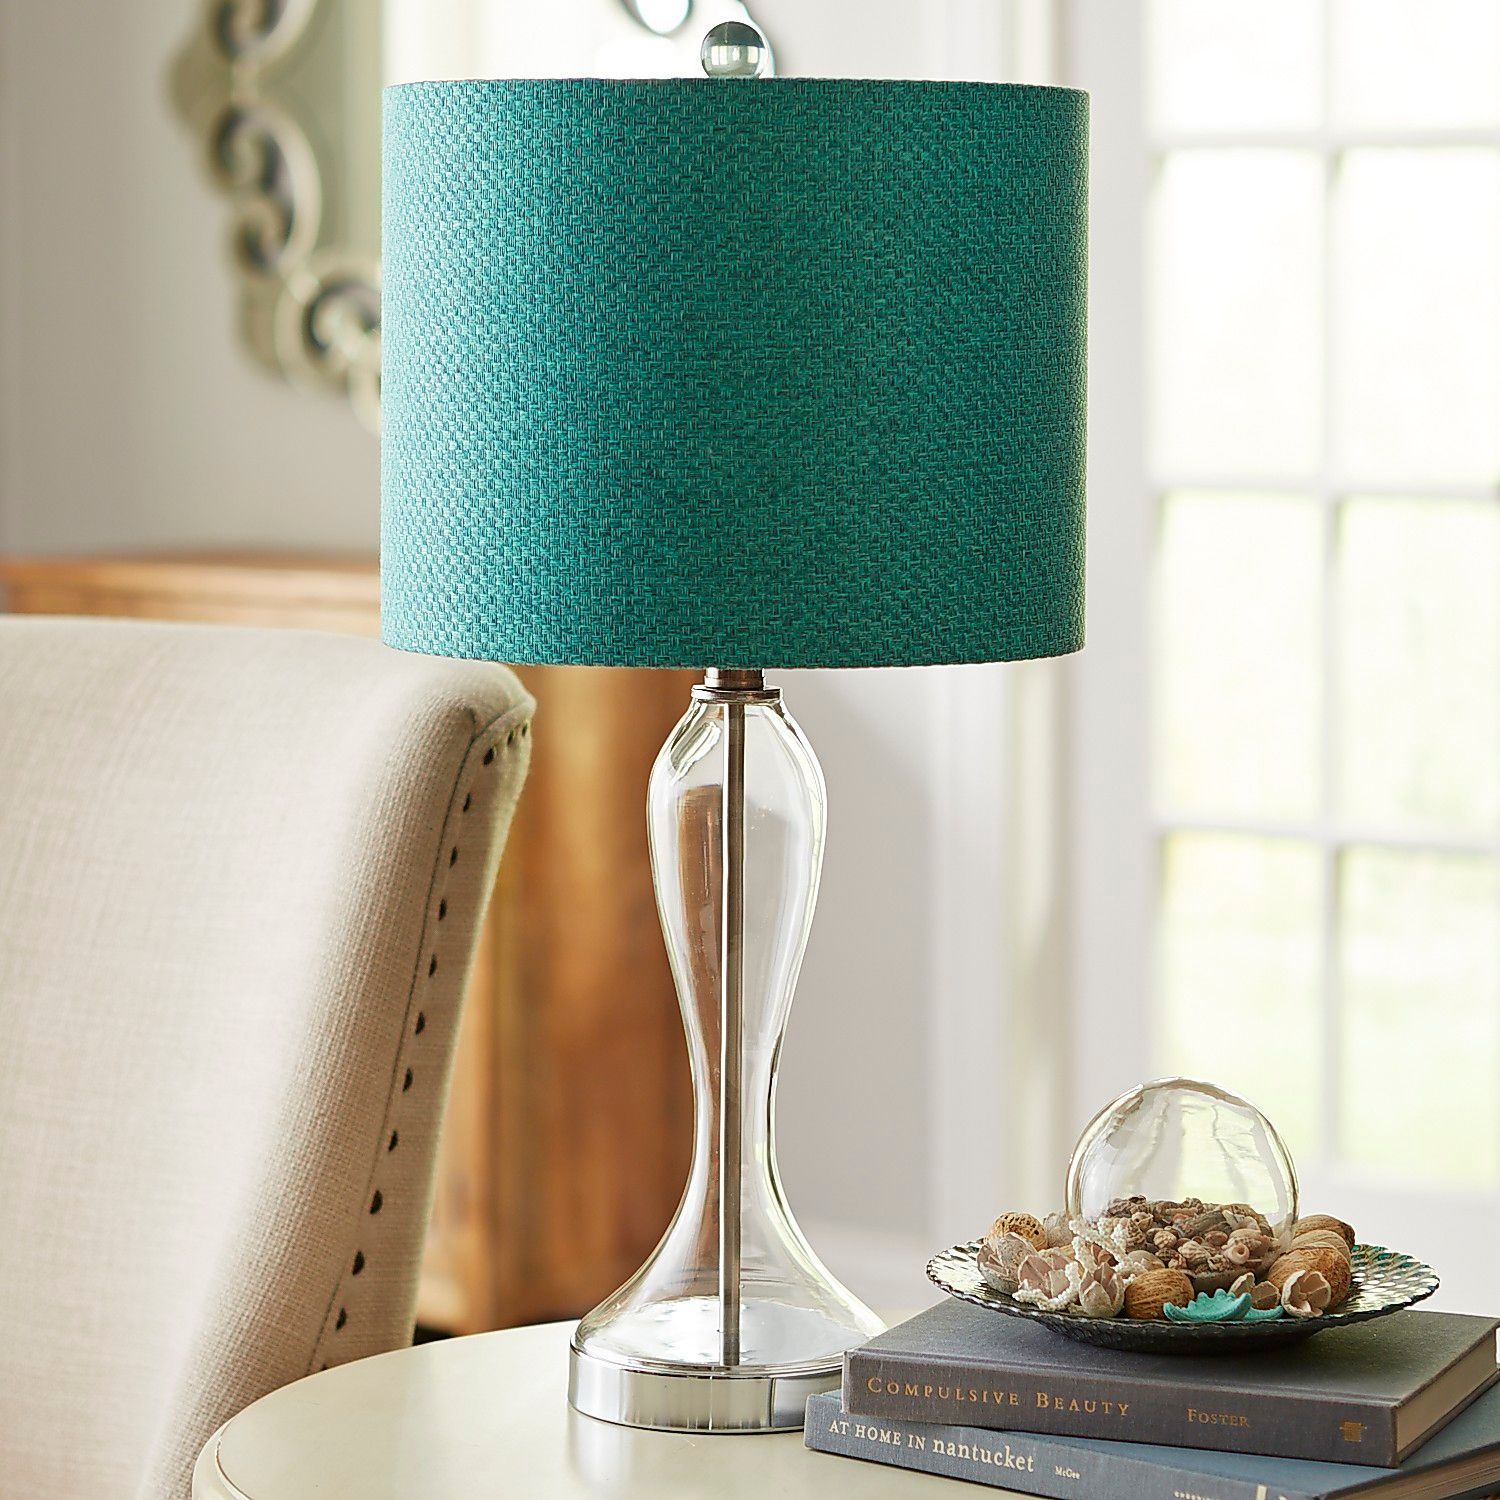 marine glass table lamp pier imports nautical accent lamps narrow console cabinet bathroom floor storage best outdoor umbrellas furniture made nest tables west elm light fixtures